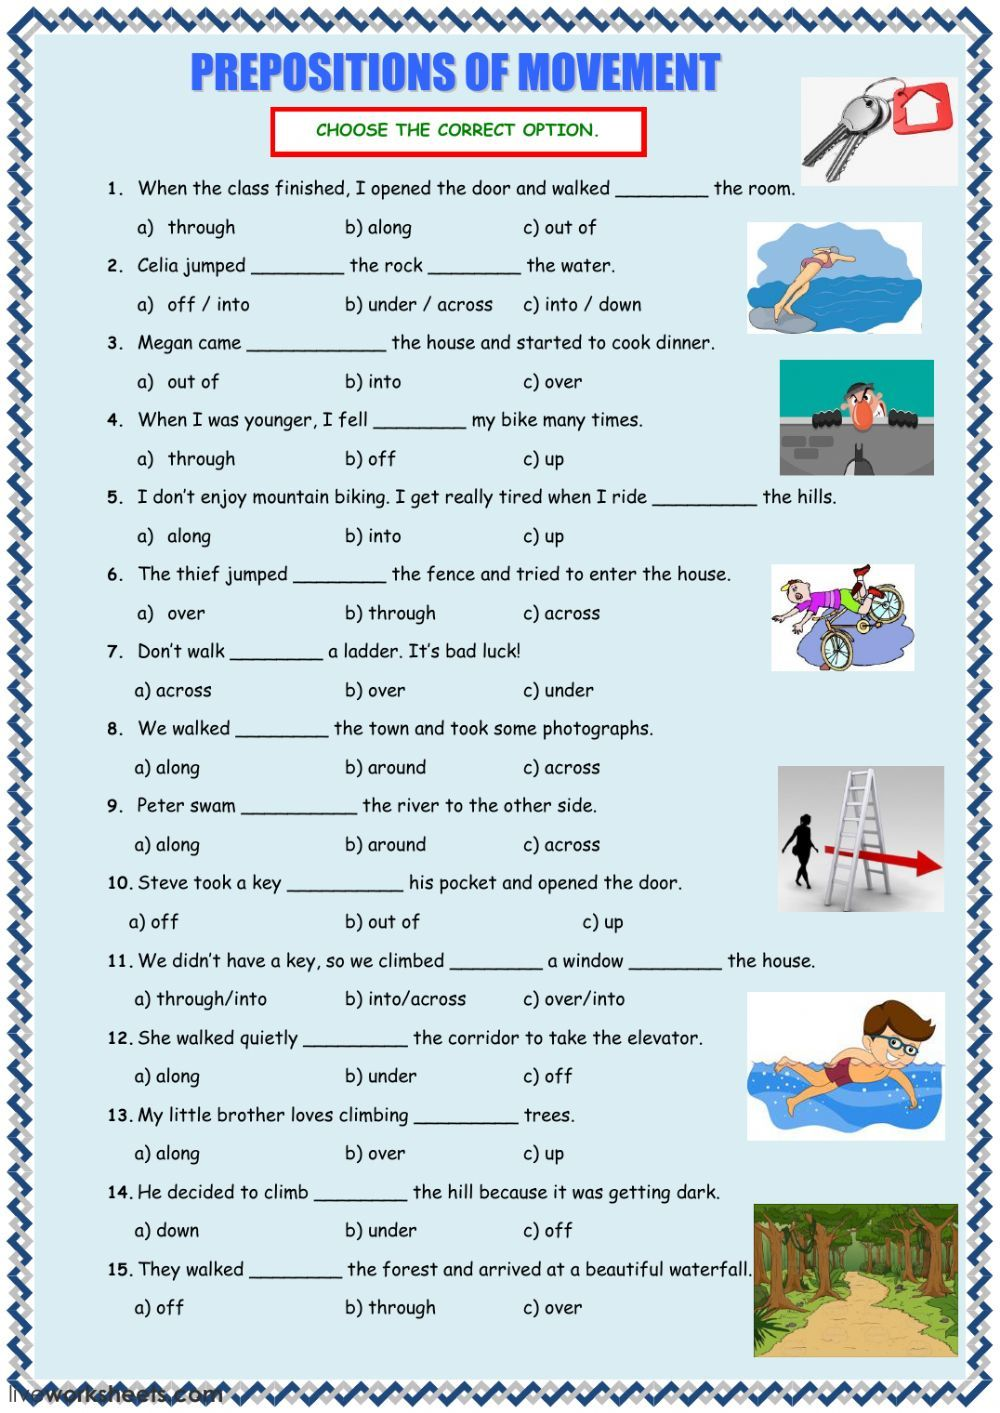 medium resolution of Prepositions of movement interactive and downloadable worksheet. You can do  the exercises online or downloa…   Preposition worksheets